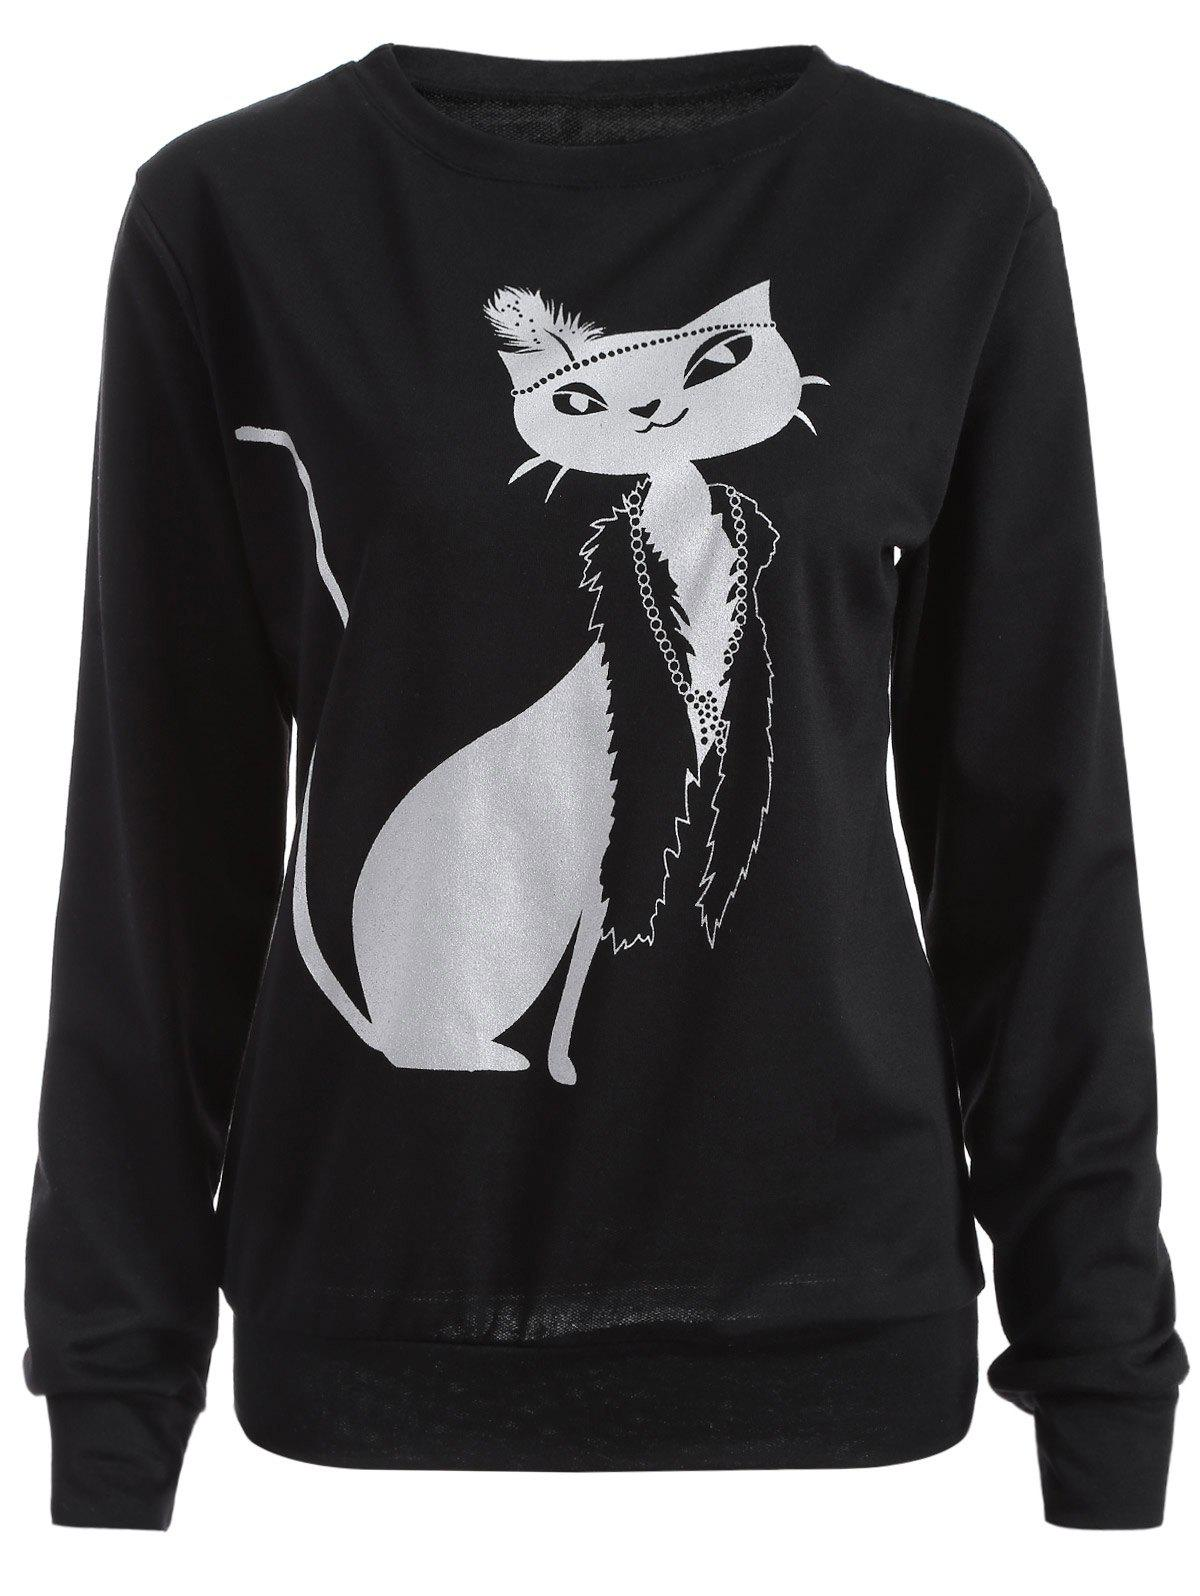 Casual Cat Print Loose Sweatshirt - BLACK M